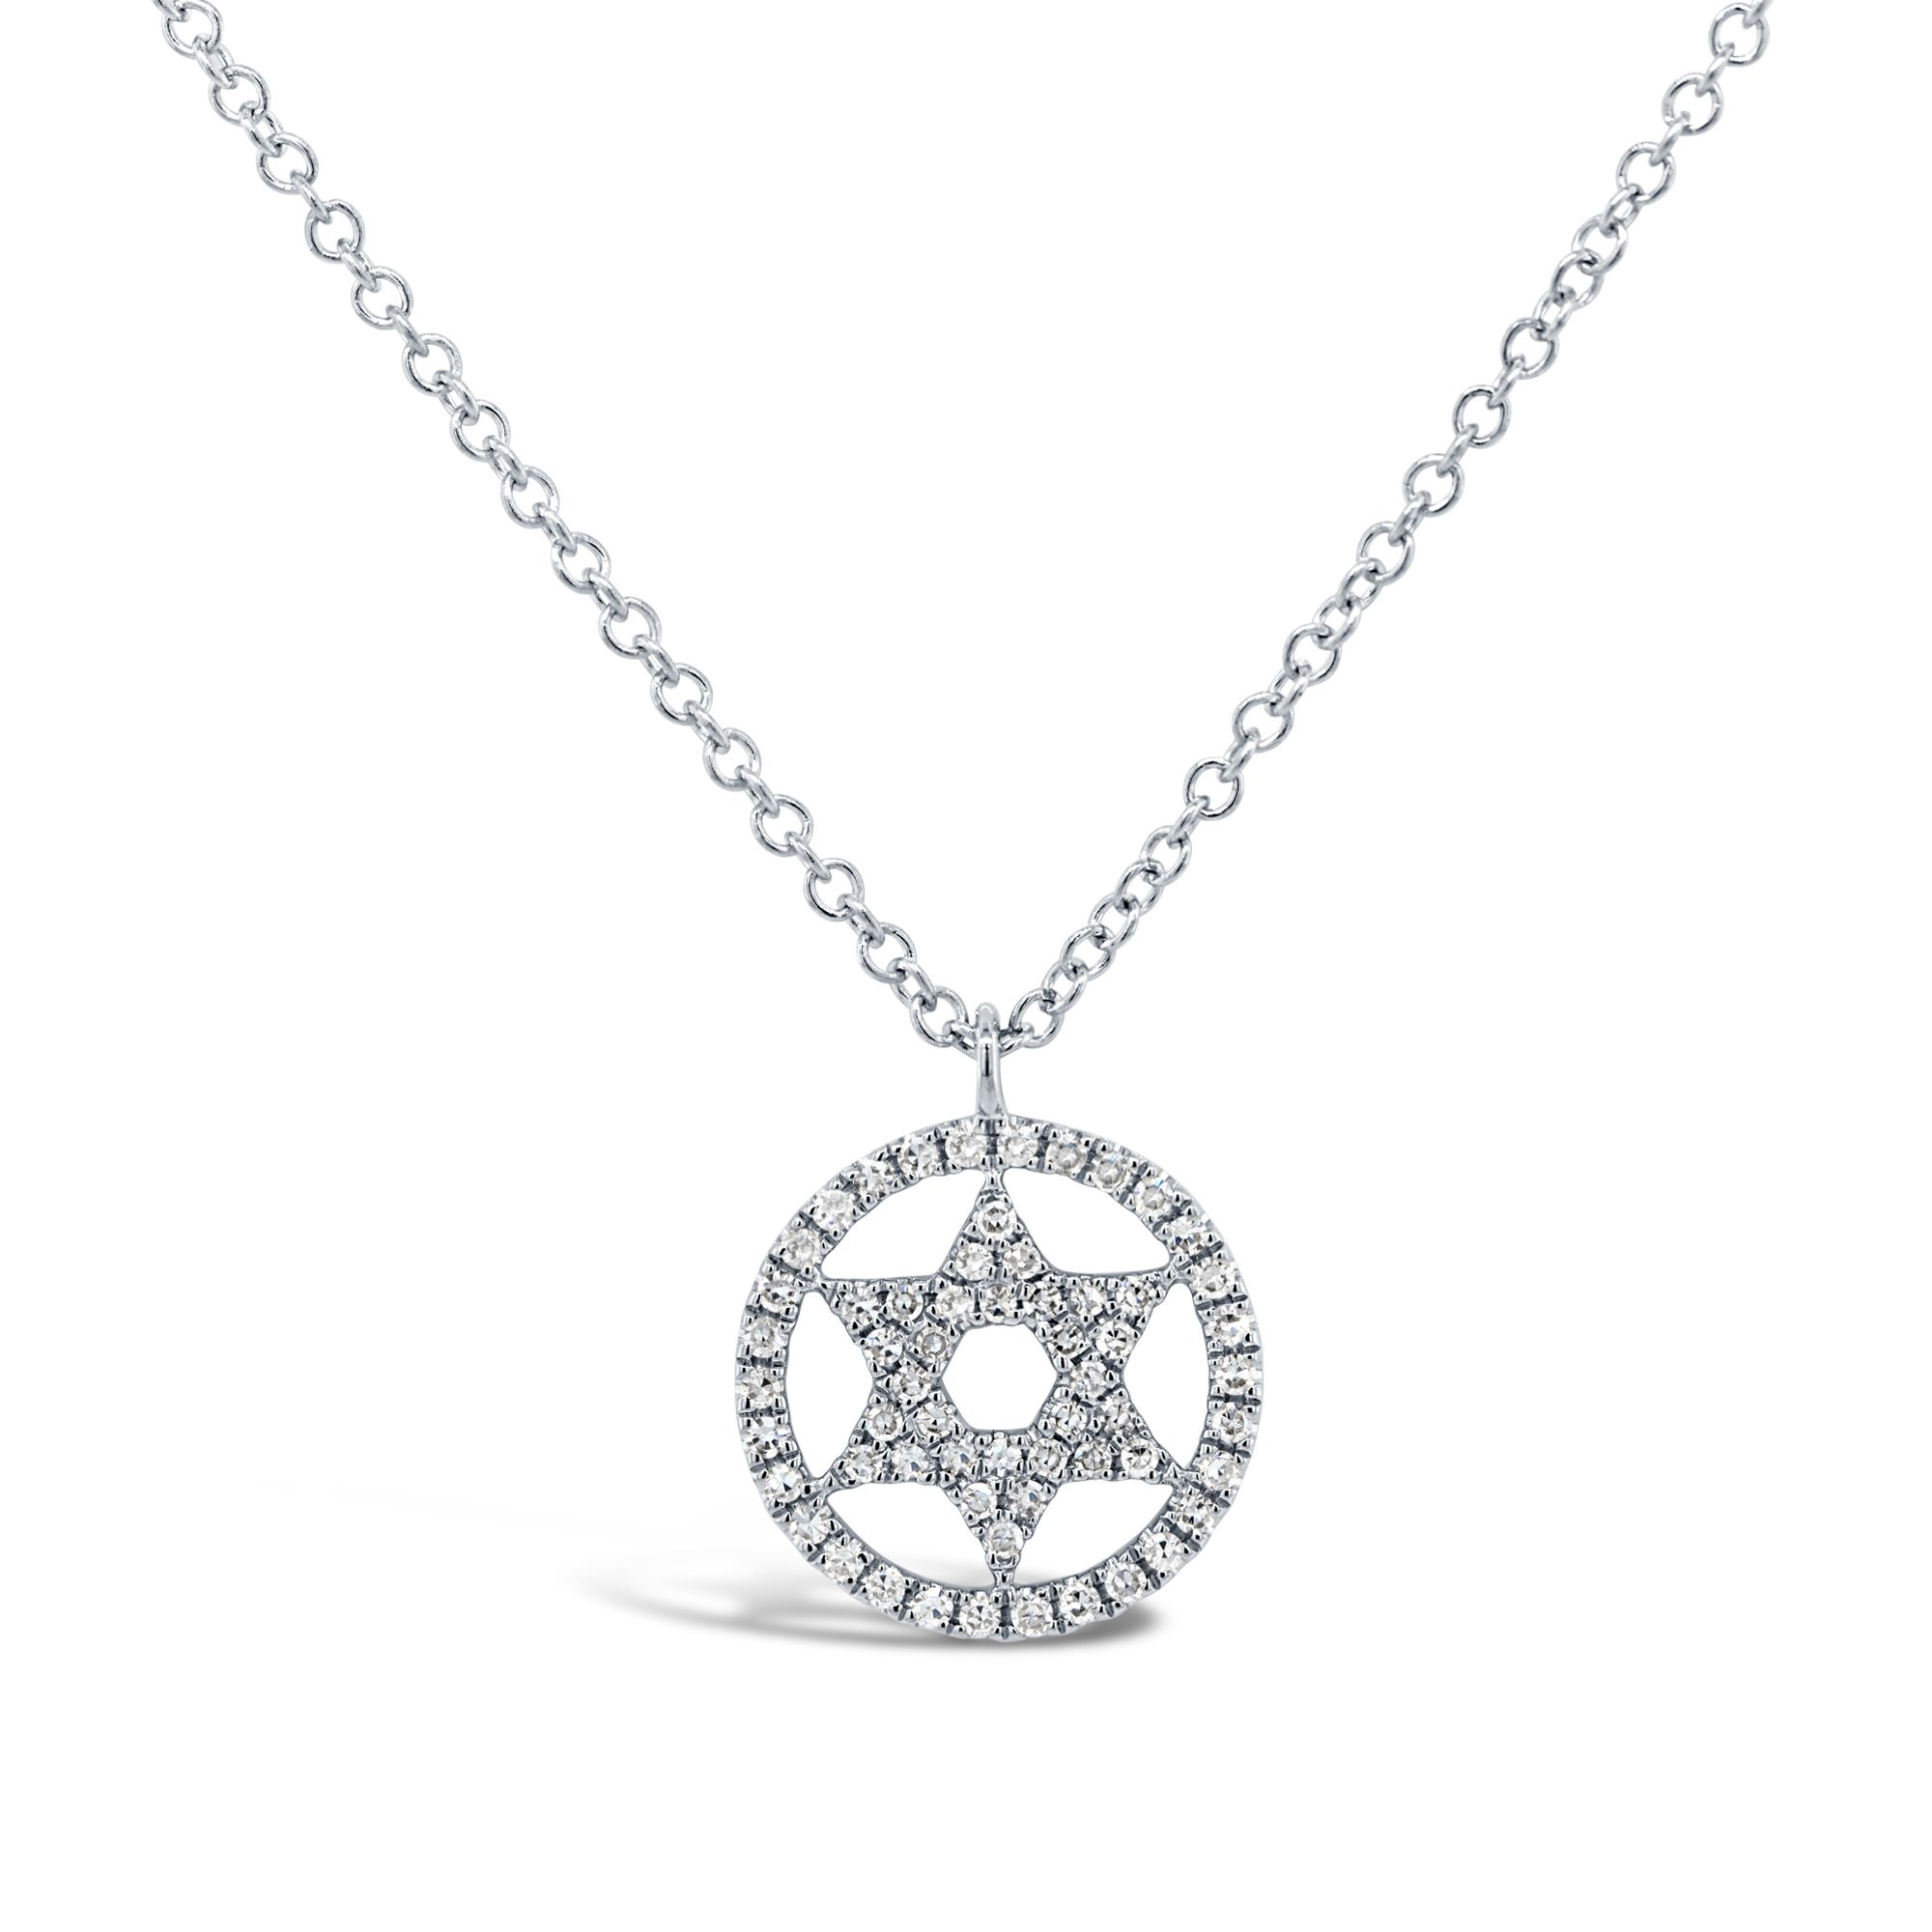 bc62a920864dc London Collection 14k Gold Diamond Pave Star of David Halo Pendant Necklace